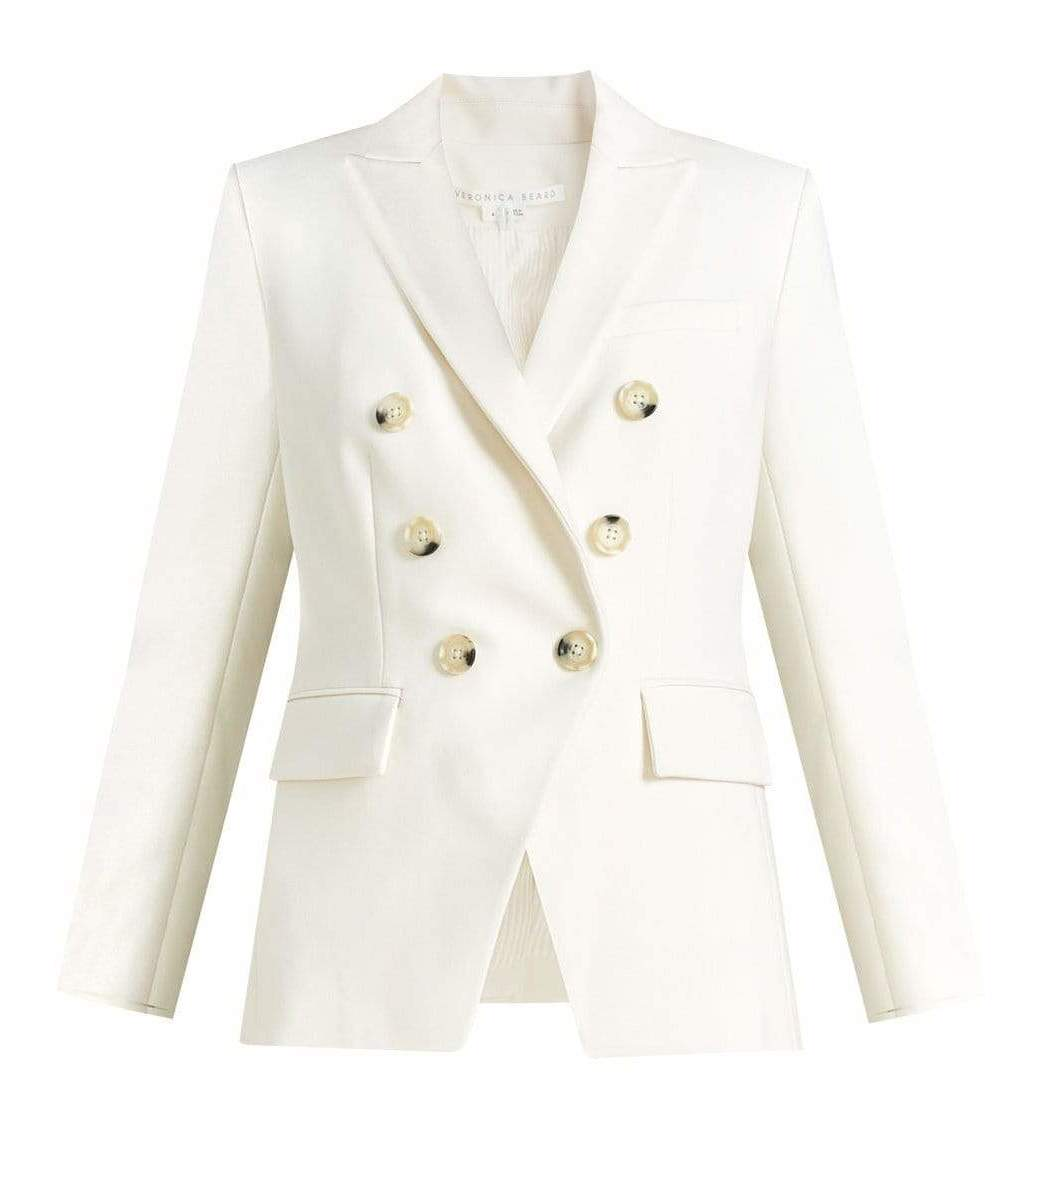 Veronica Beard Porcelain Miller Dickey Jacket